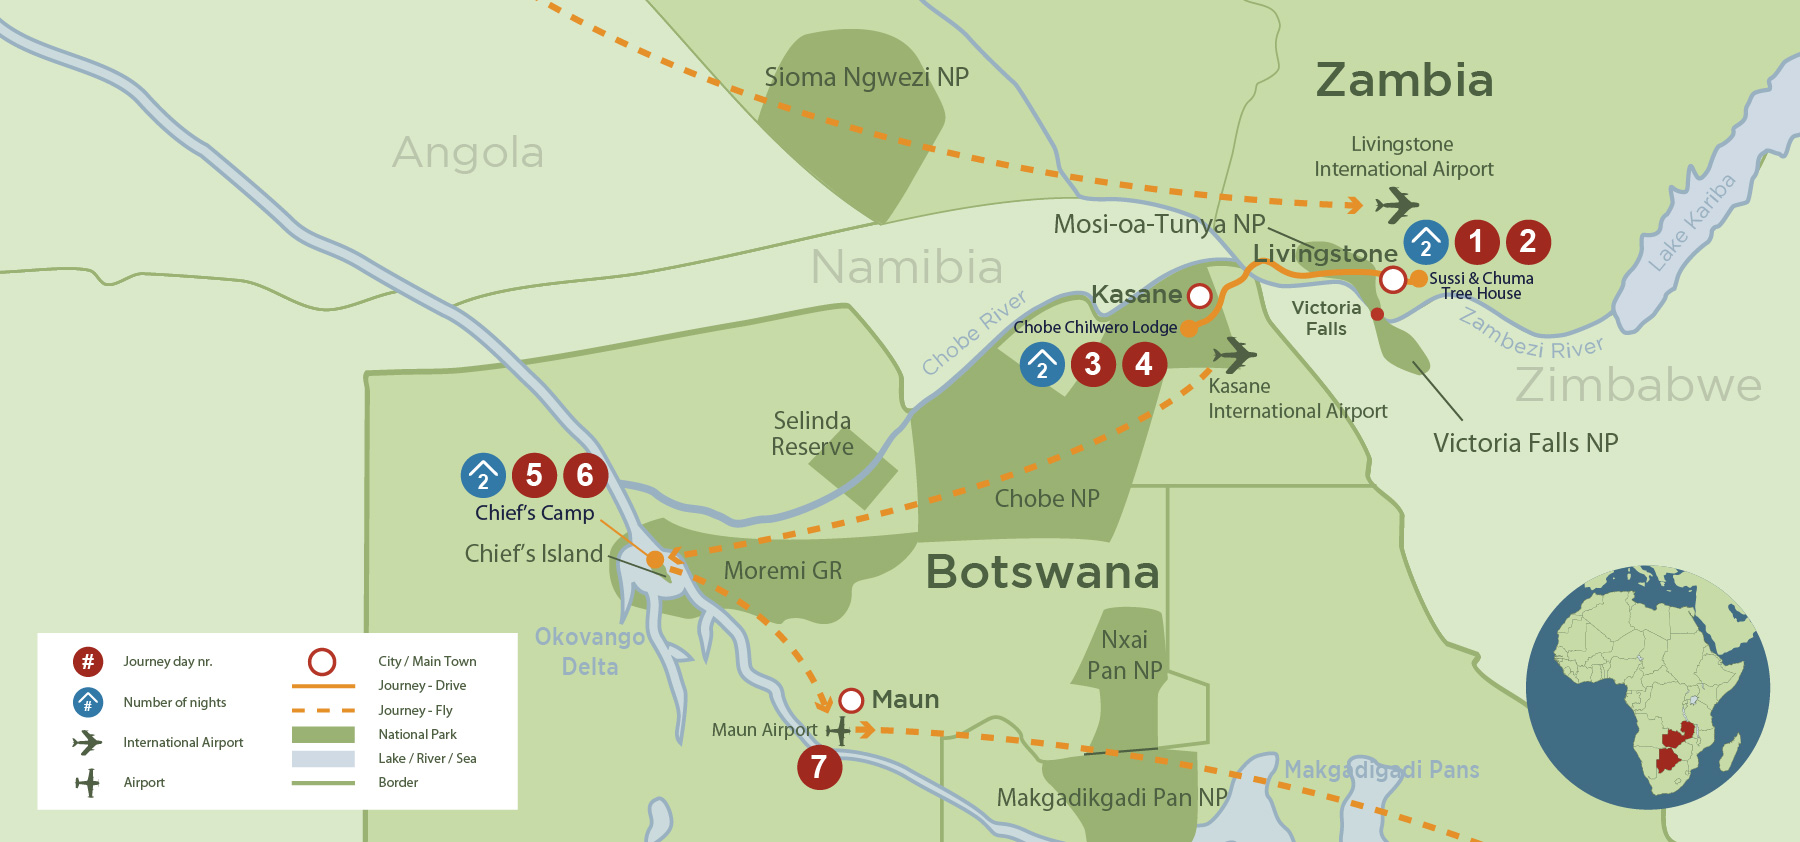 Victoria Falls, Okavango Delta and Chobe Safari (7 days) safari map